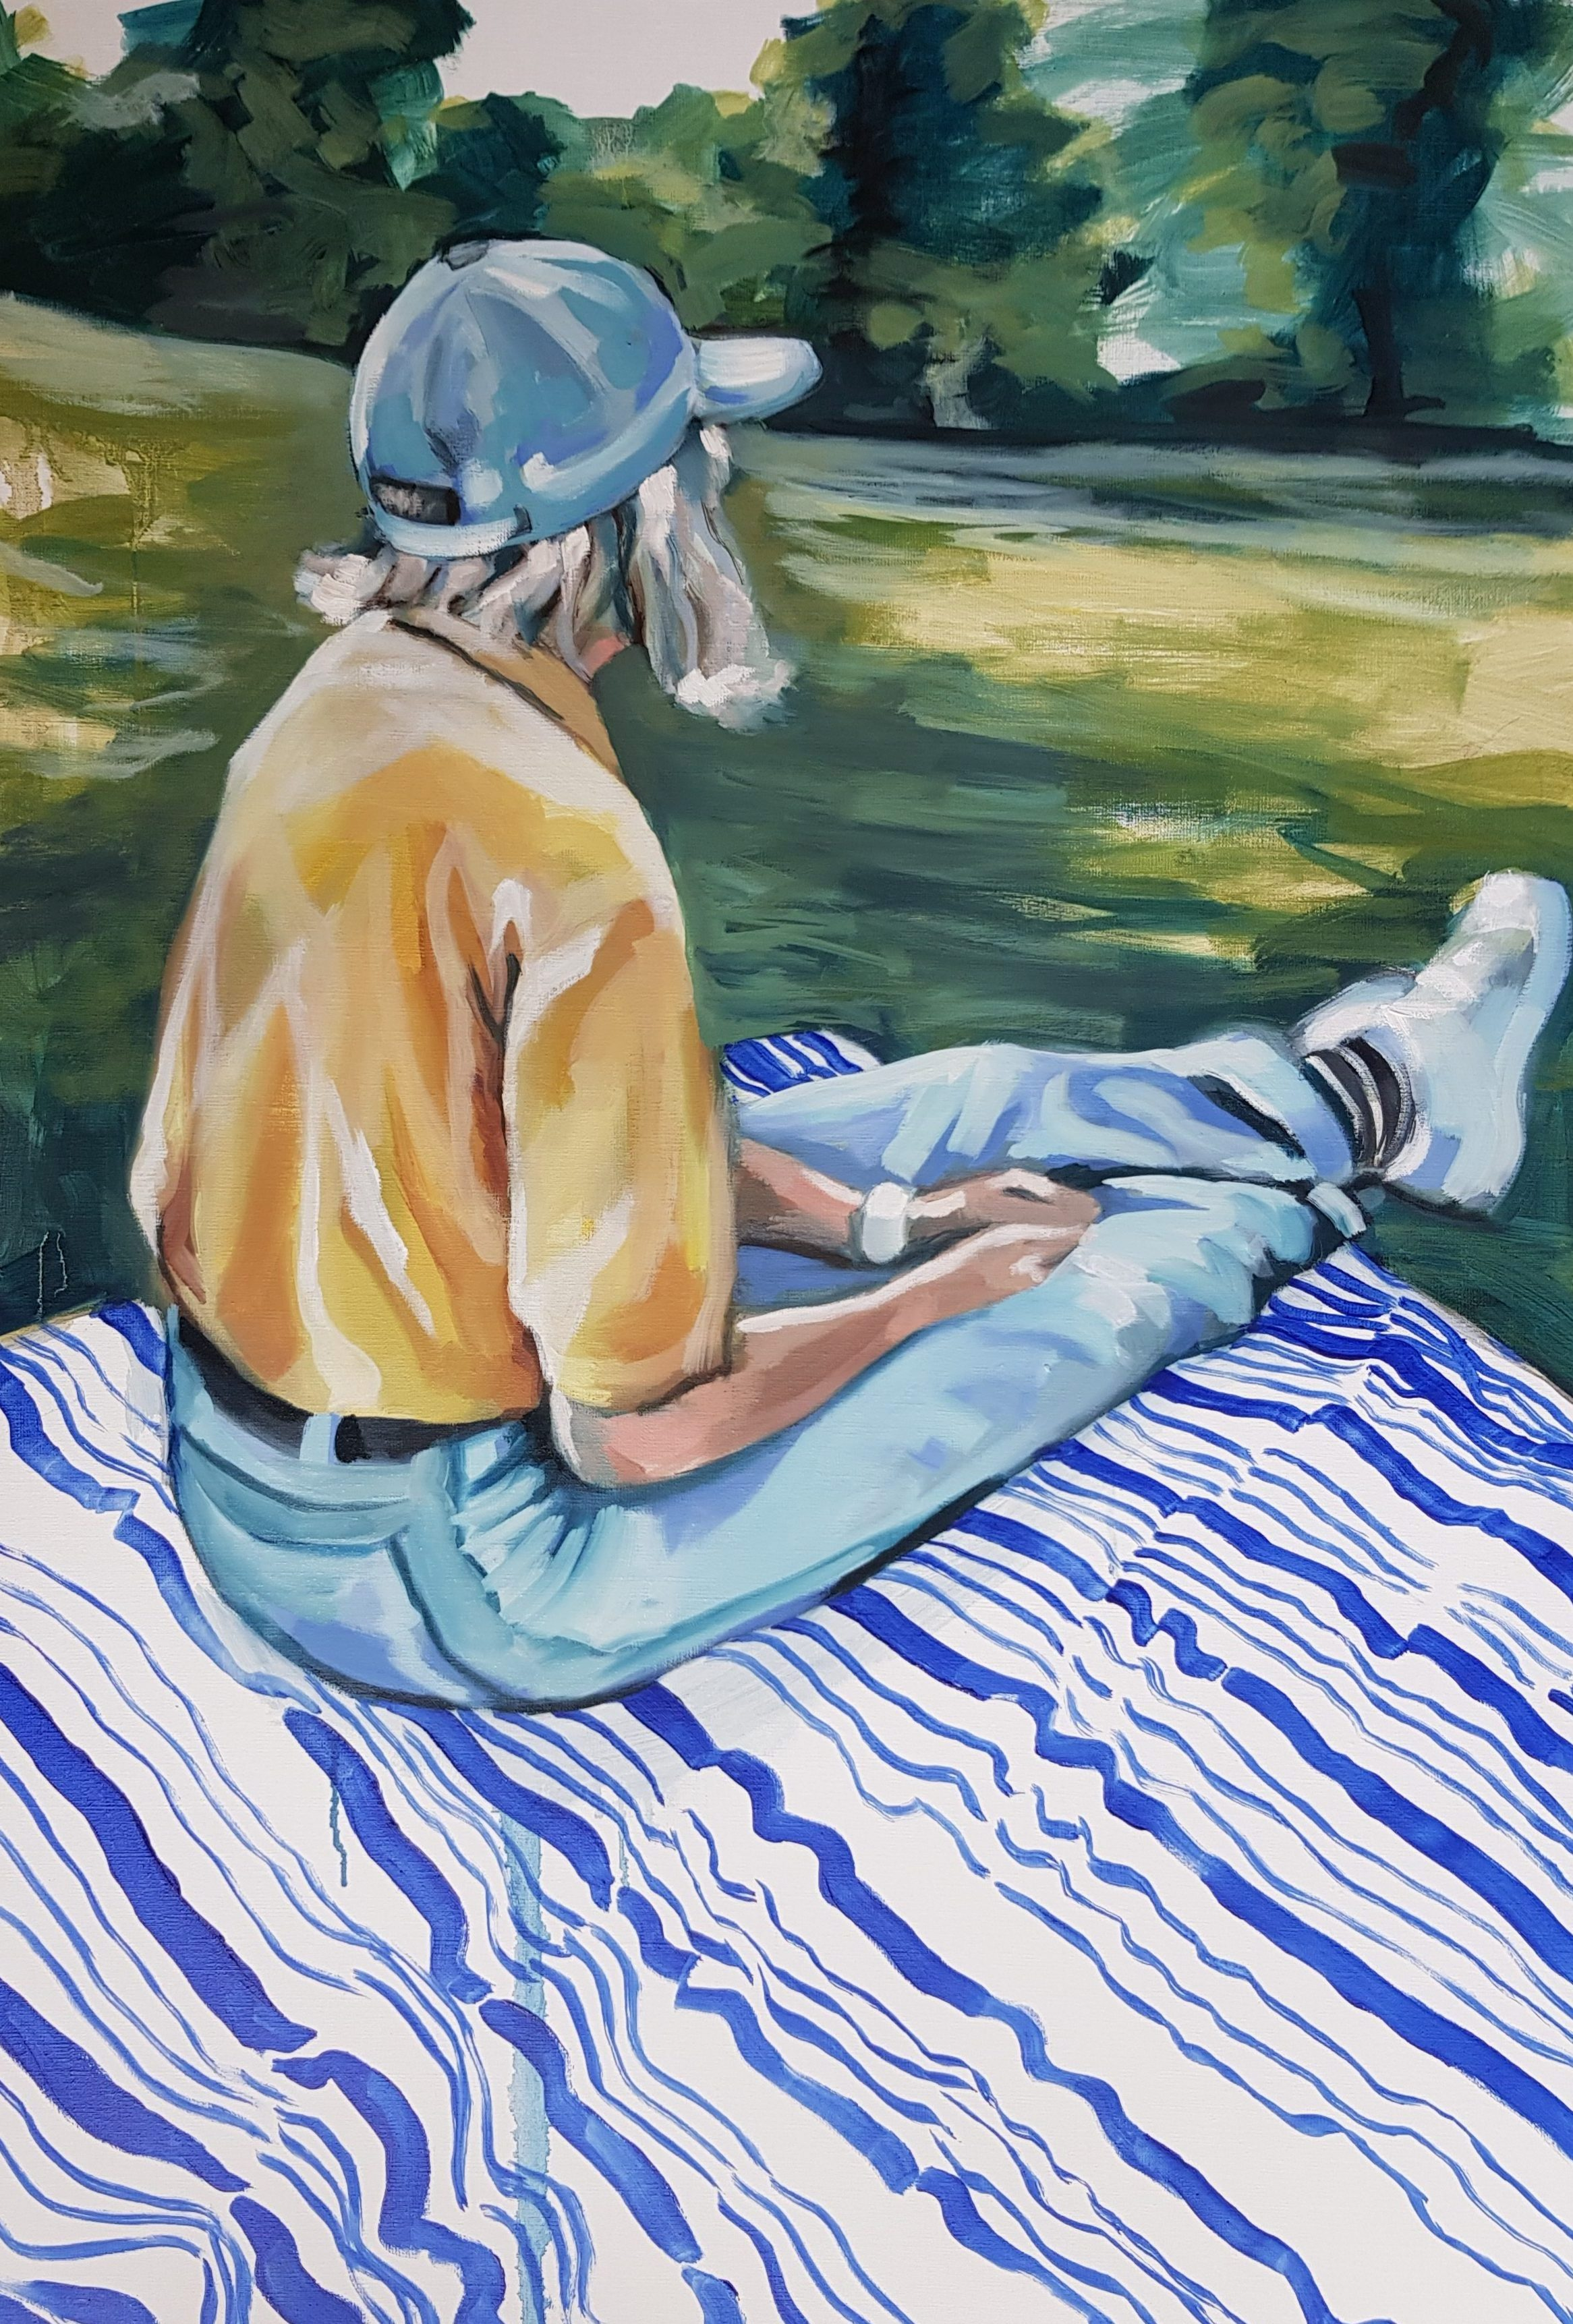 A Day in the Park, oil painting over canvas, 24x36, 2018